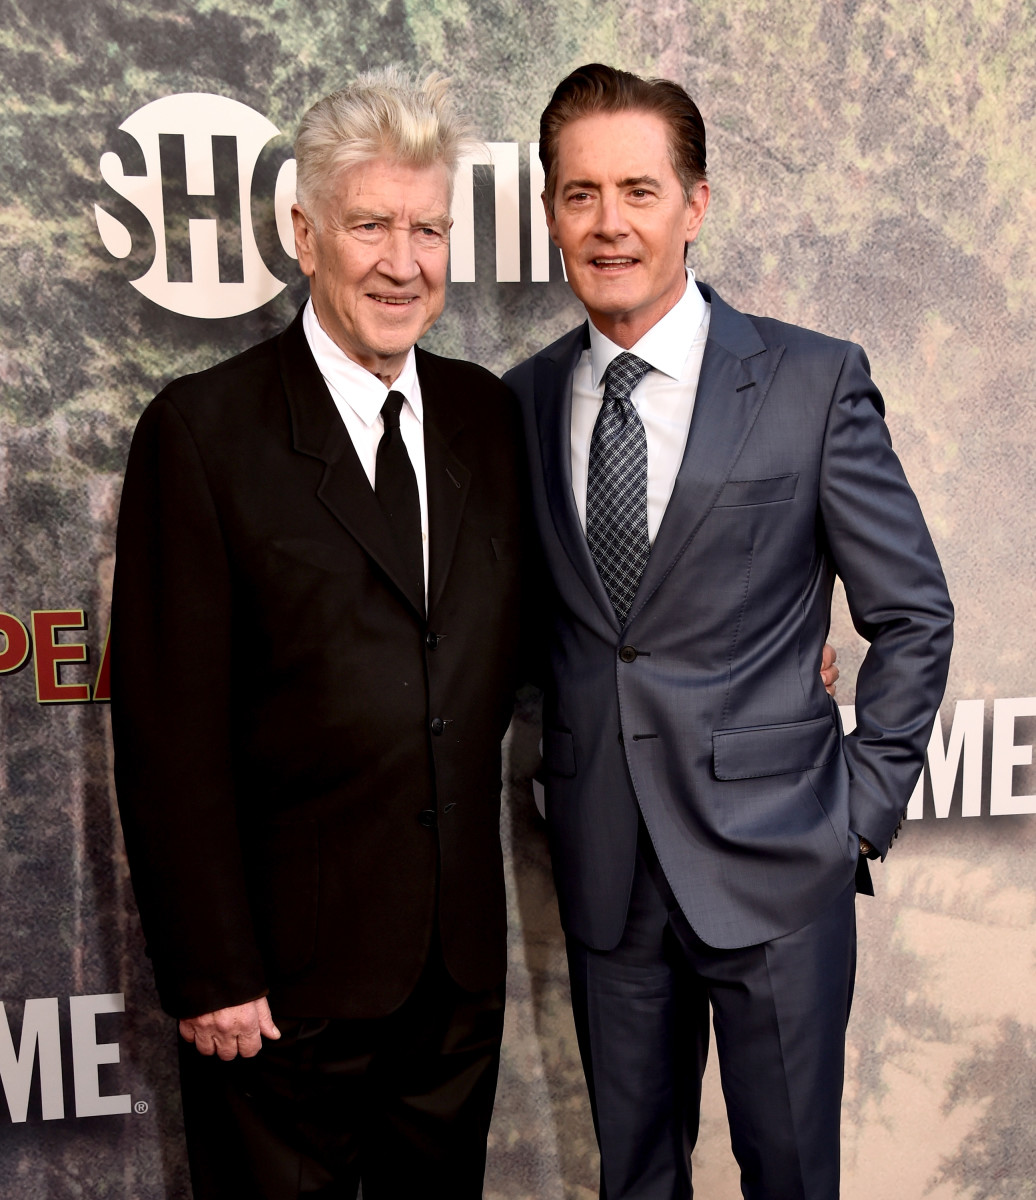 """David Lynch and Kyle MacLachlan at the """"Twin Peaks"""" premiere May 19. Photo: Alberto E. Rodriguez/Getty Images"""